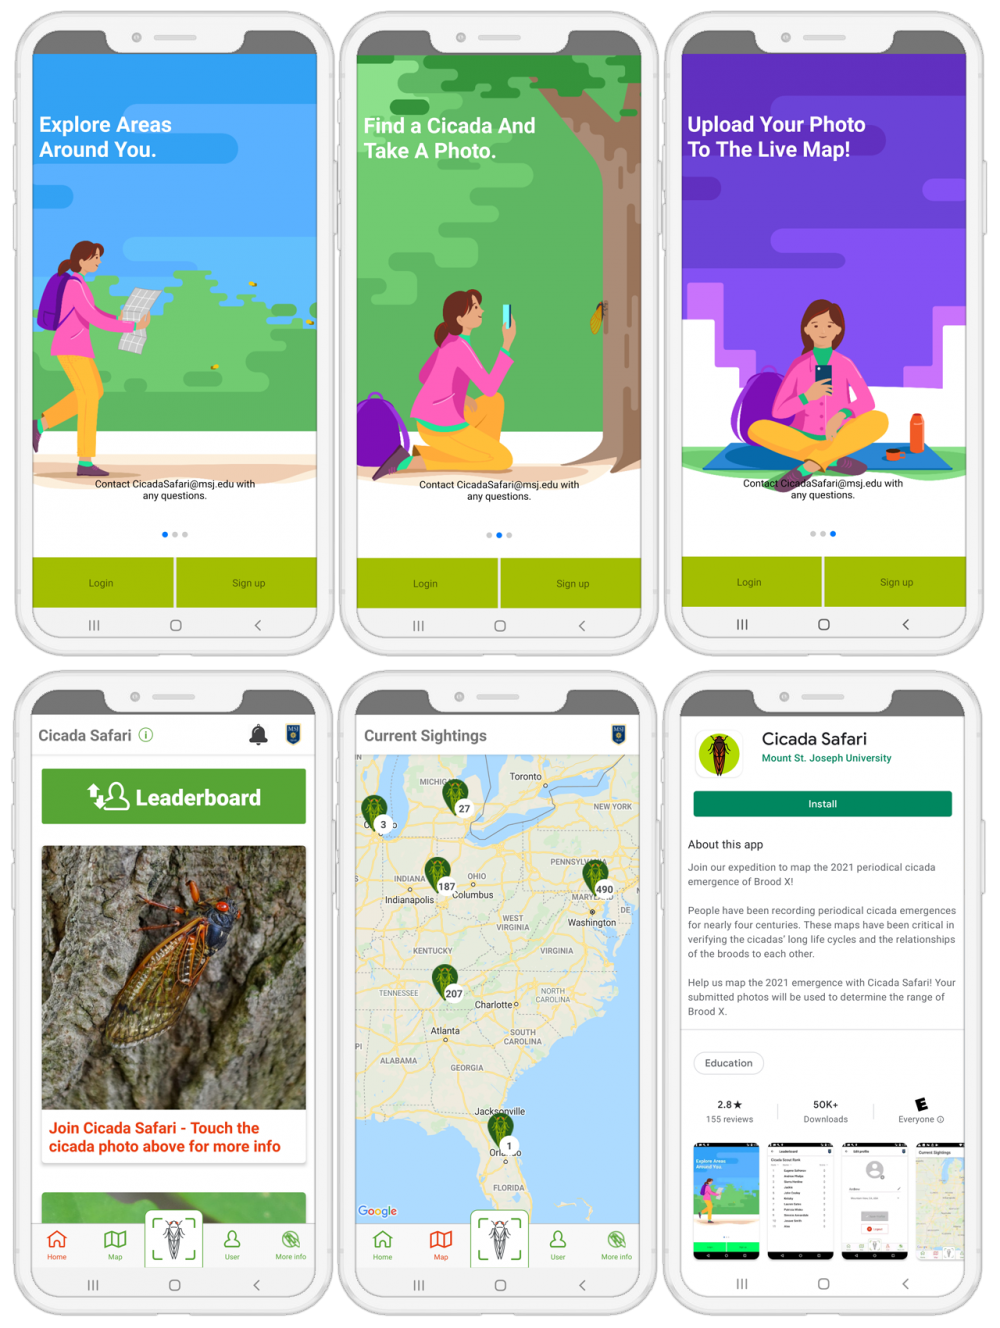 Download the Cicada Safari App to help track local Brood X sitings.